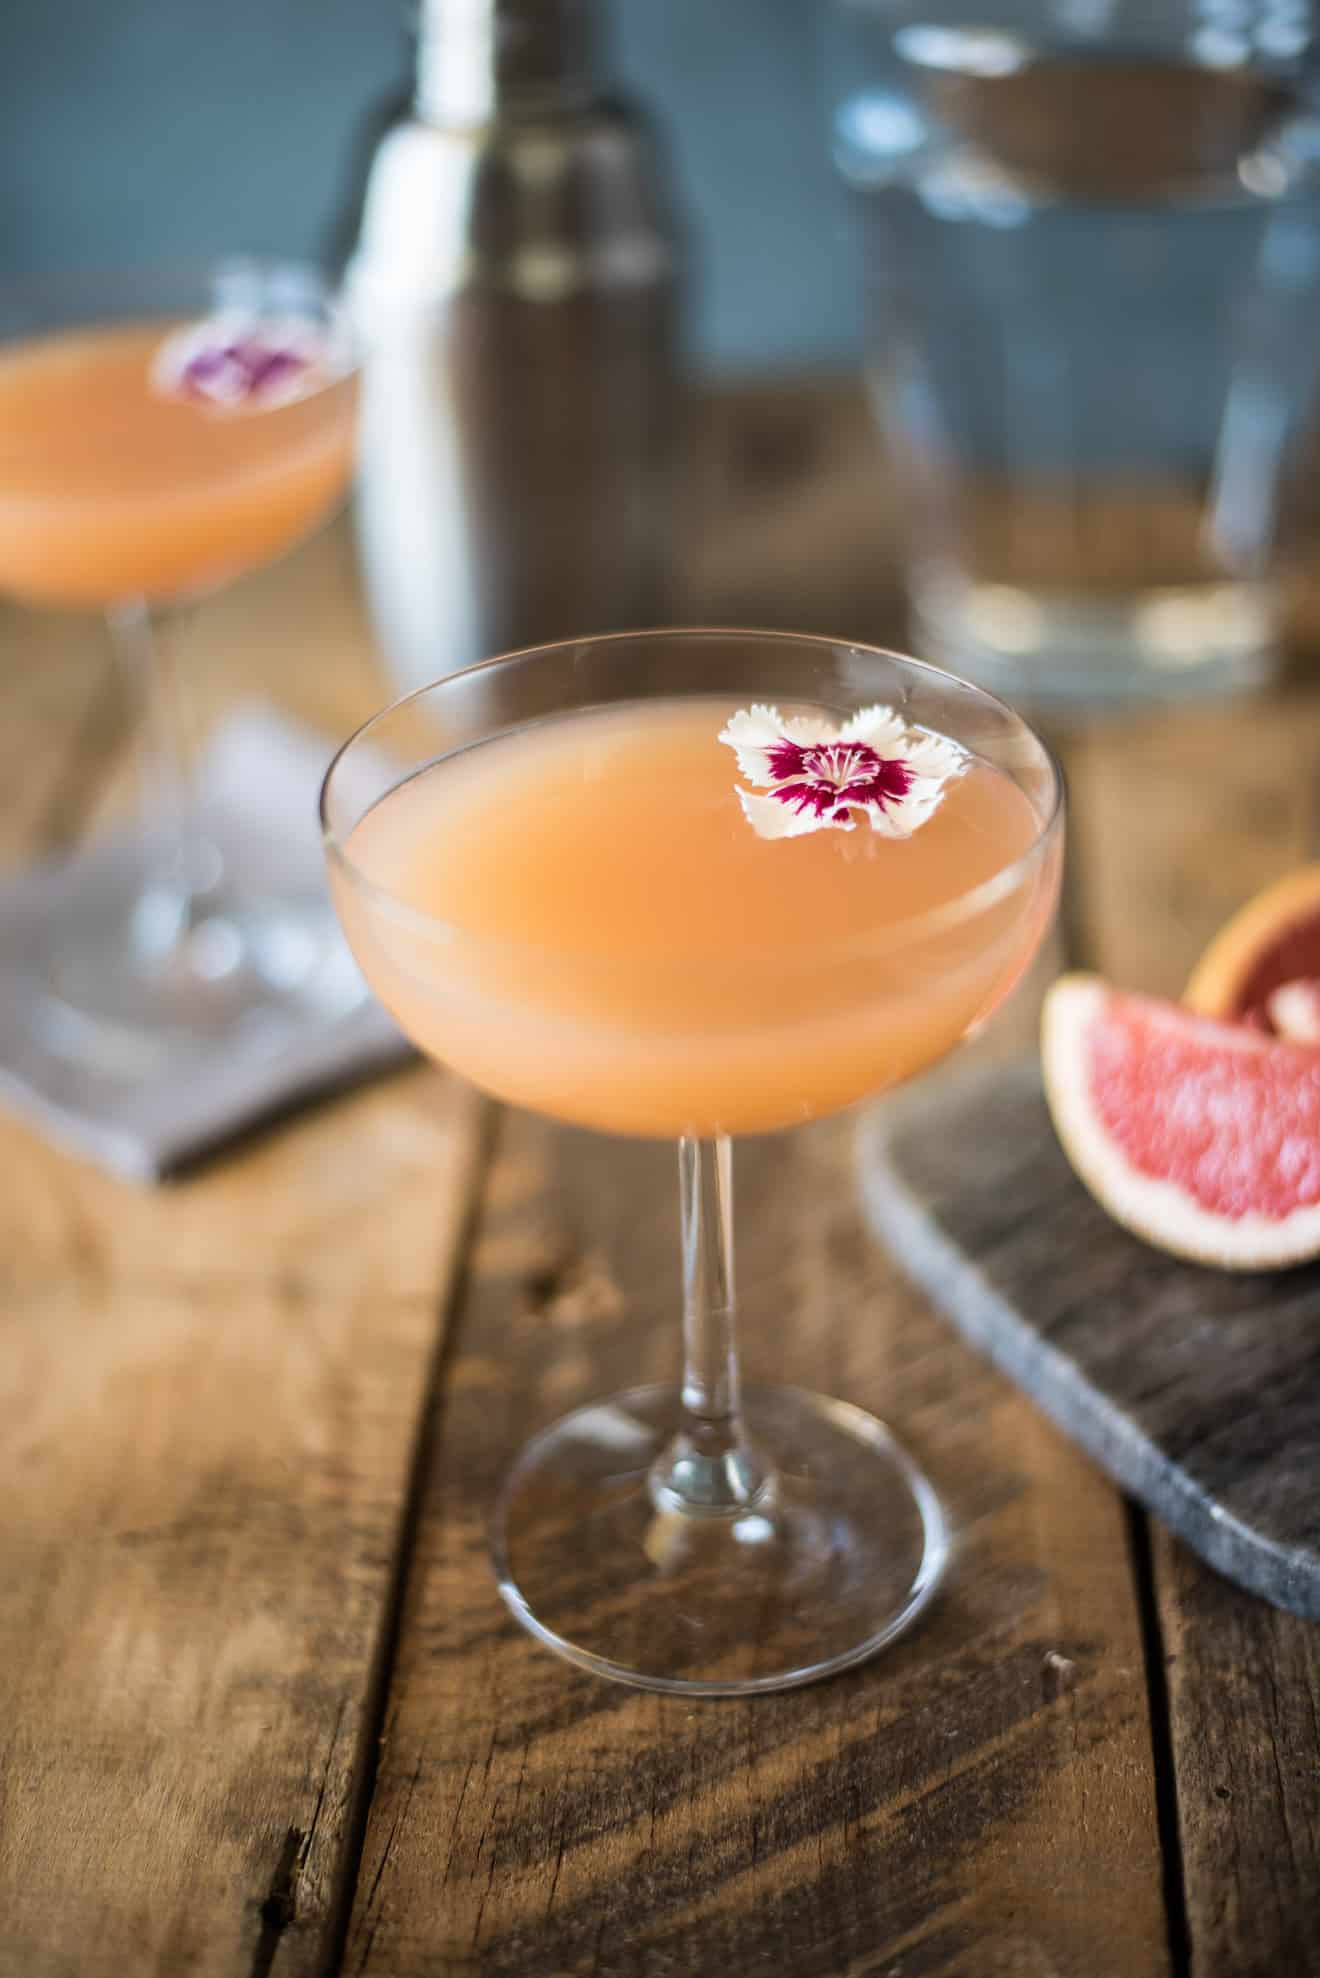 Beautiful pink grapefruit drink in a stemmed glass